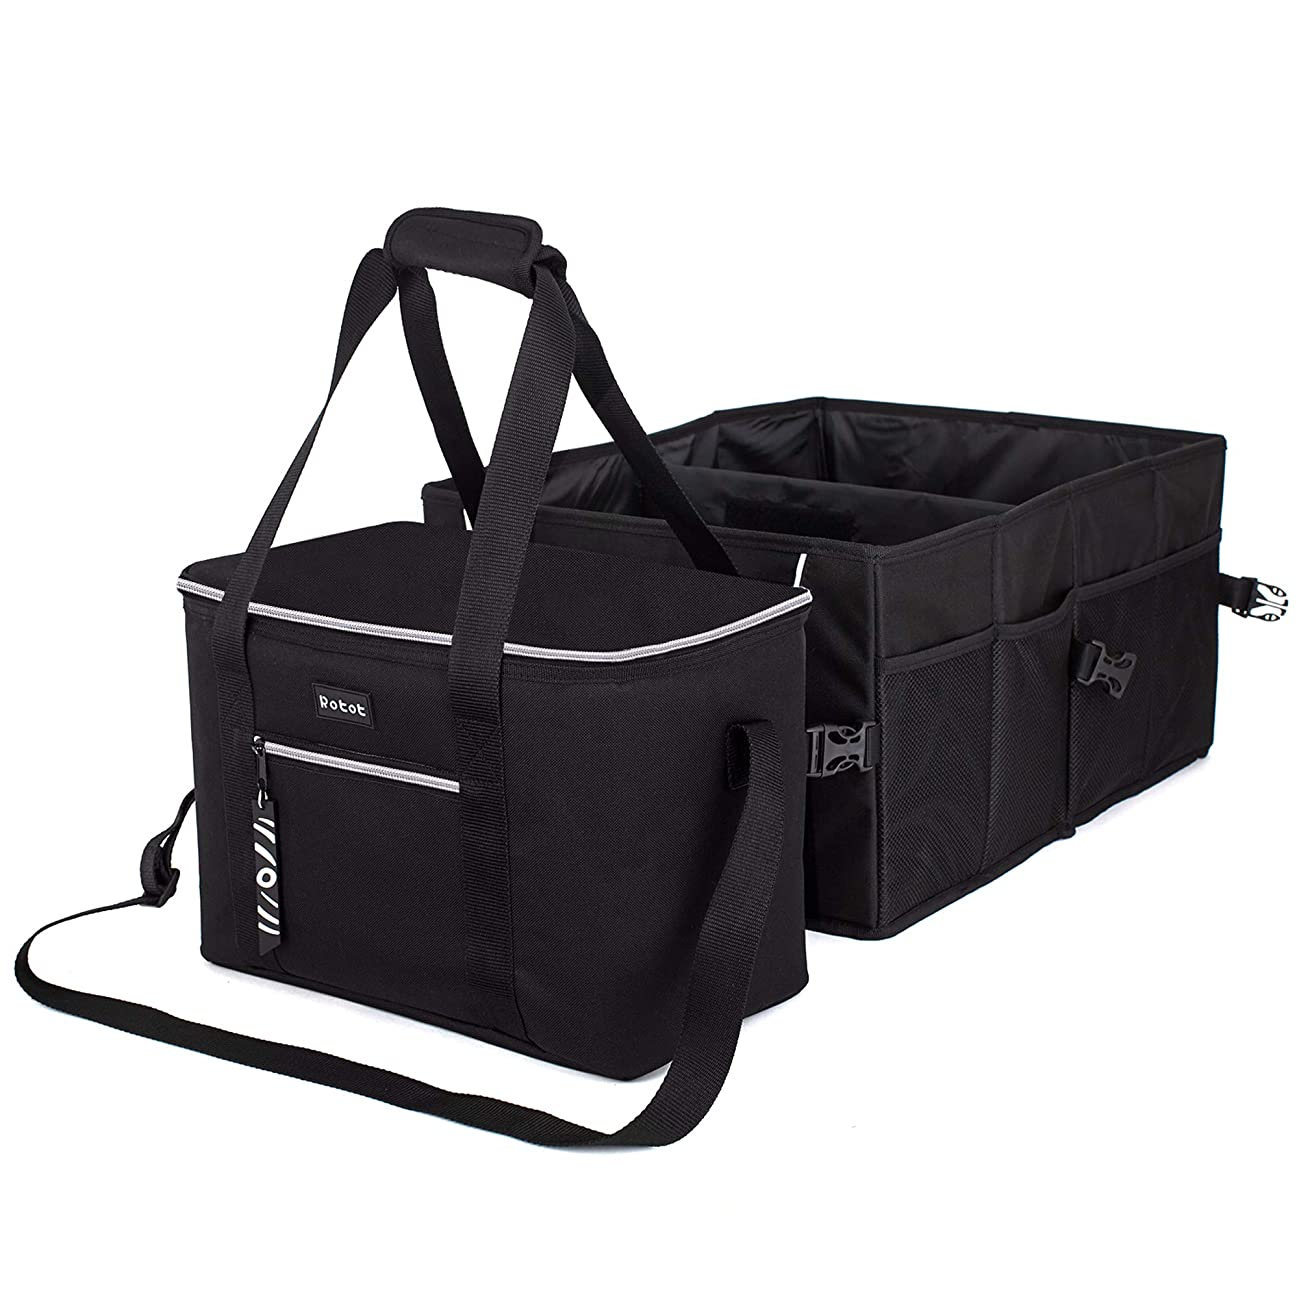 Rotot Car Trunk Organizer with Camping Cooler Bag, Durable Collapsible Cargo Groceries Storage with 2 Non-Slip Strap Hooks, Container Bin Box Waterproof Suits Most Cars, Black